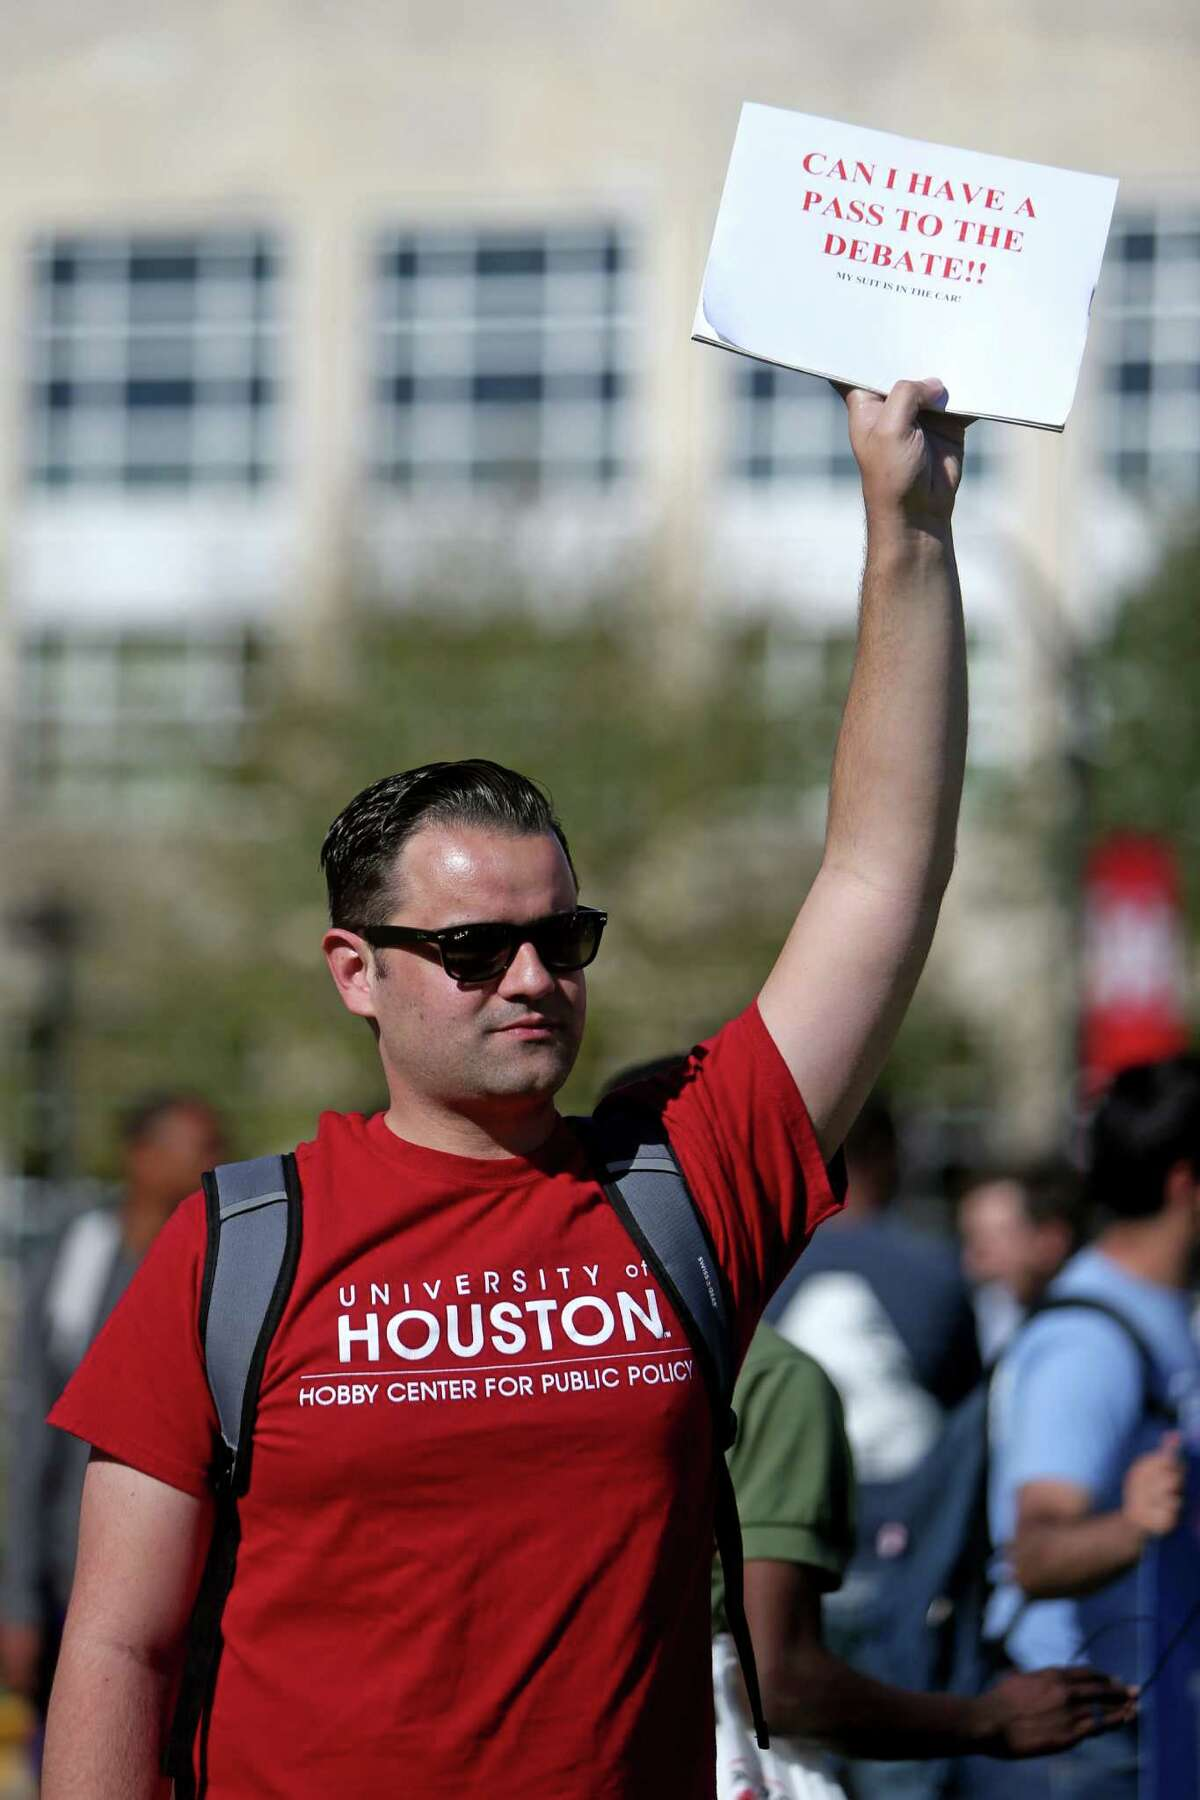 University of Houston student Fred Martins, 29, was one of thousands unable to attend the debate. The school was given 25 tickets for staff and students.